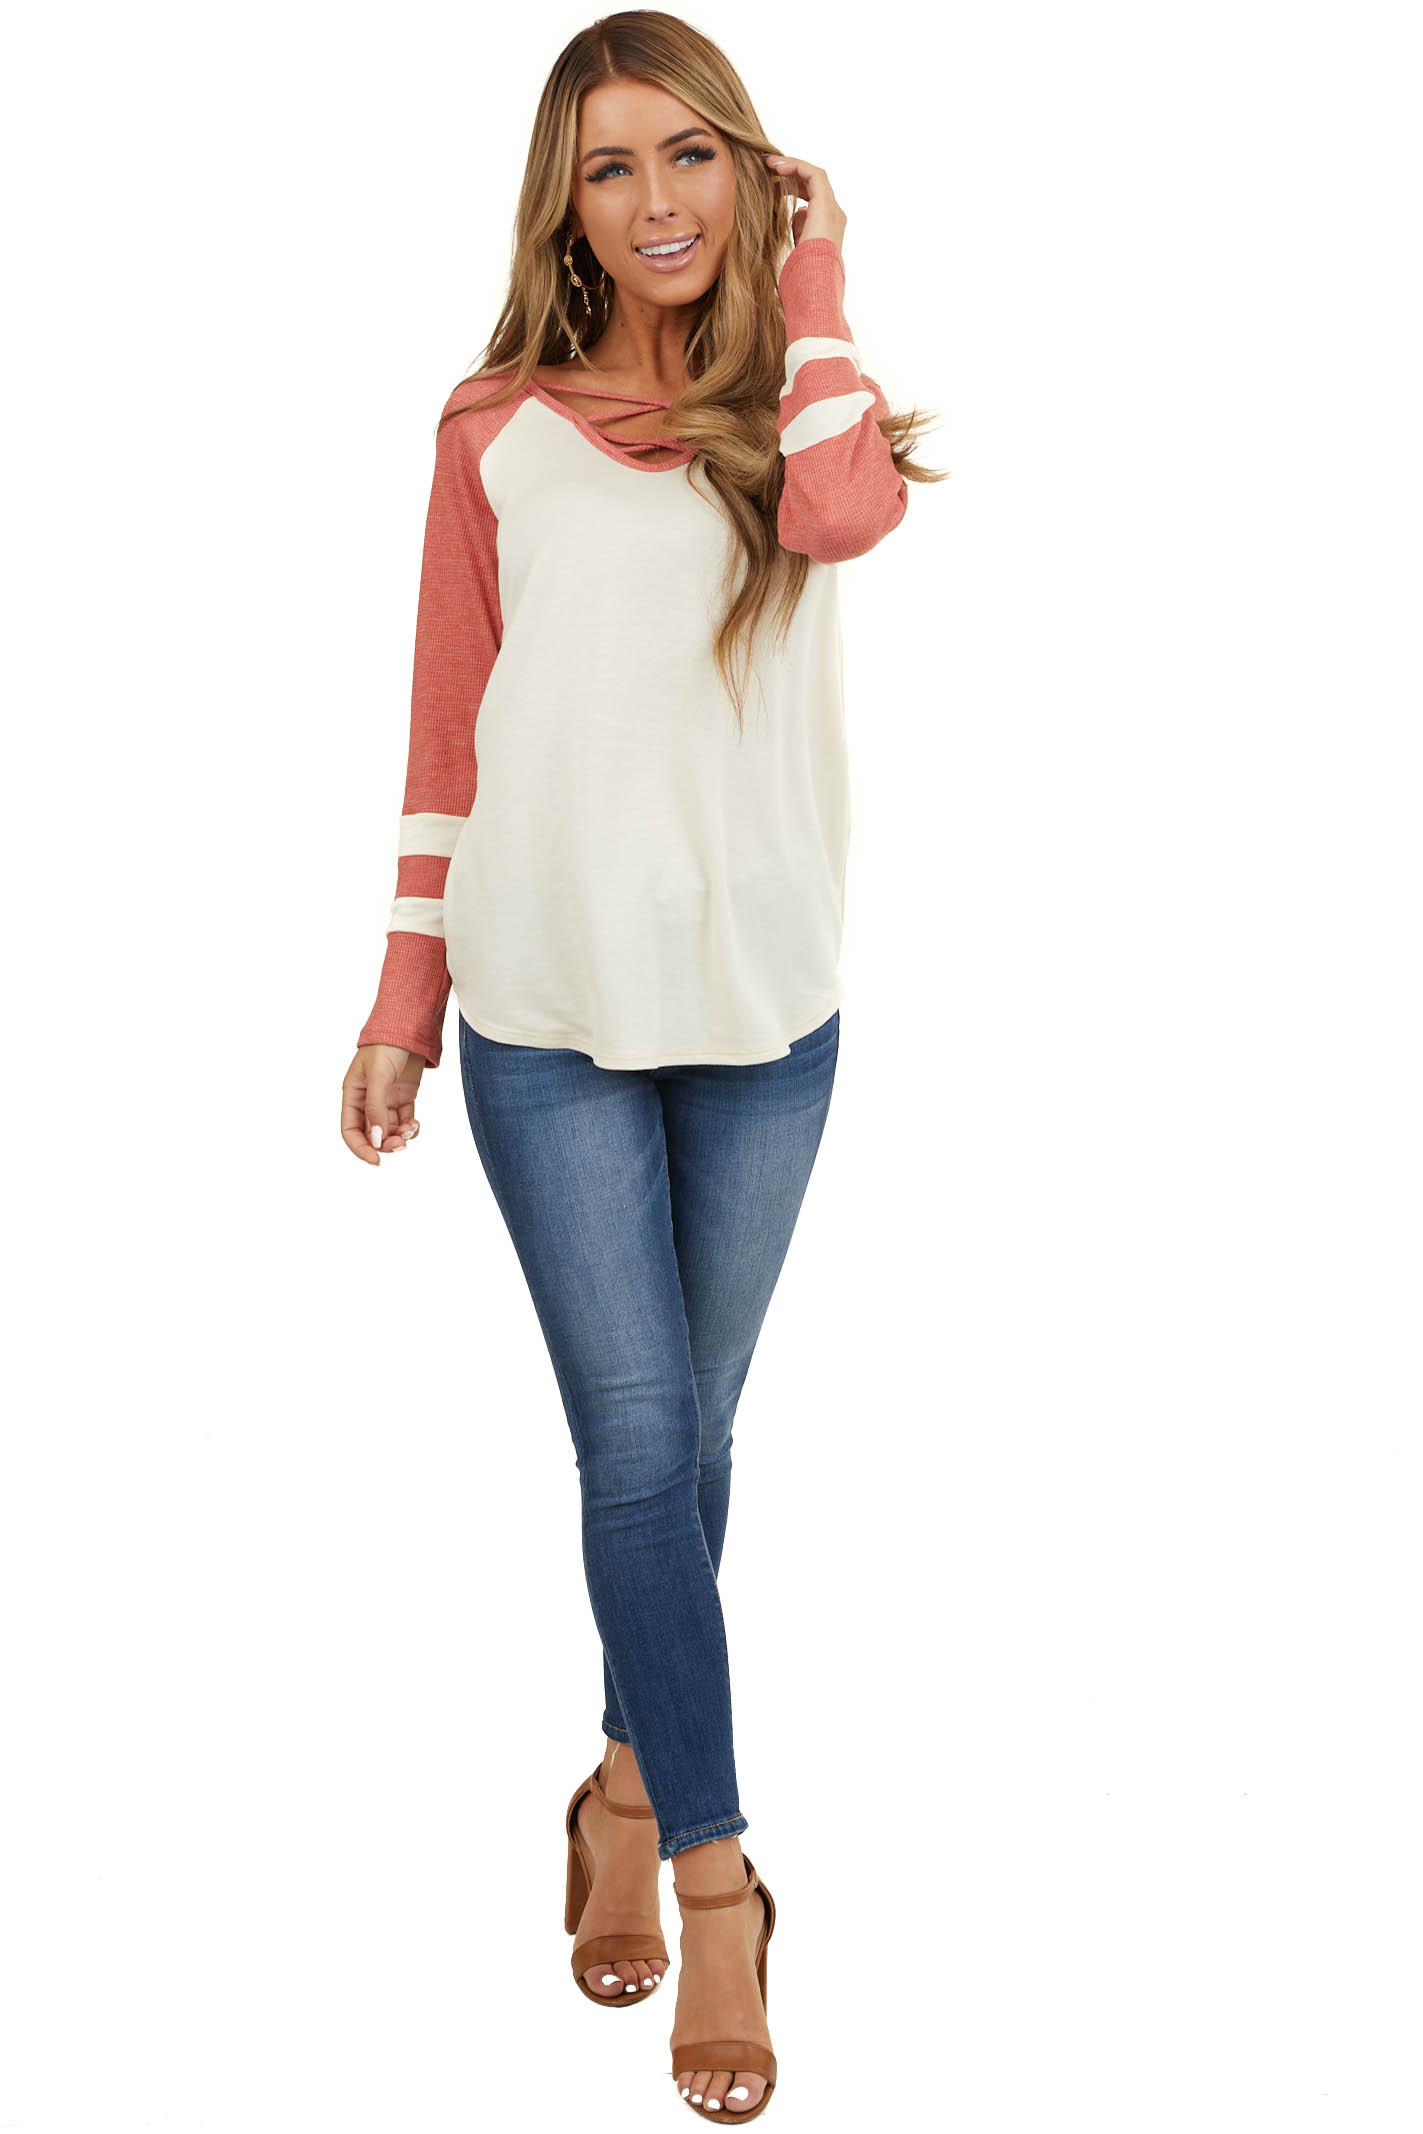 Cream Top with Dusty Red Waffle Knit Contrast Sleeves